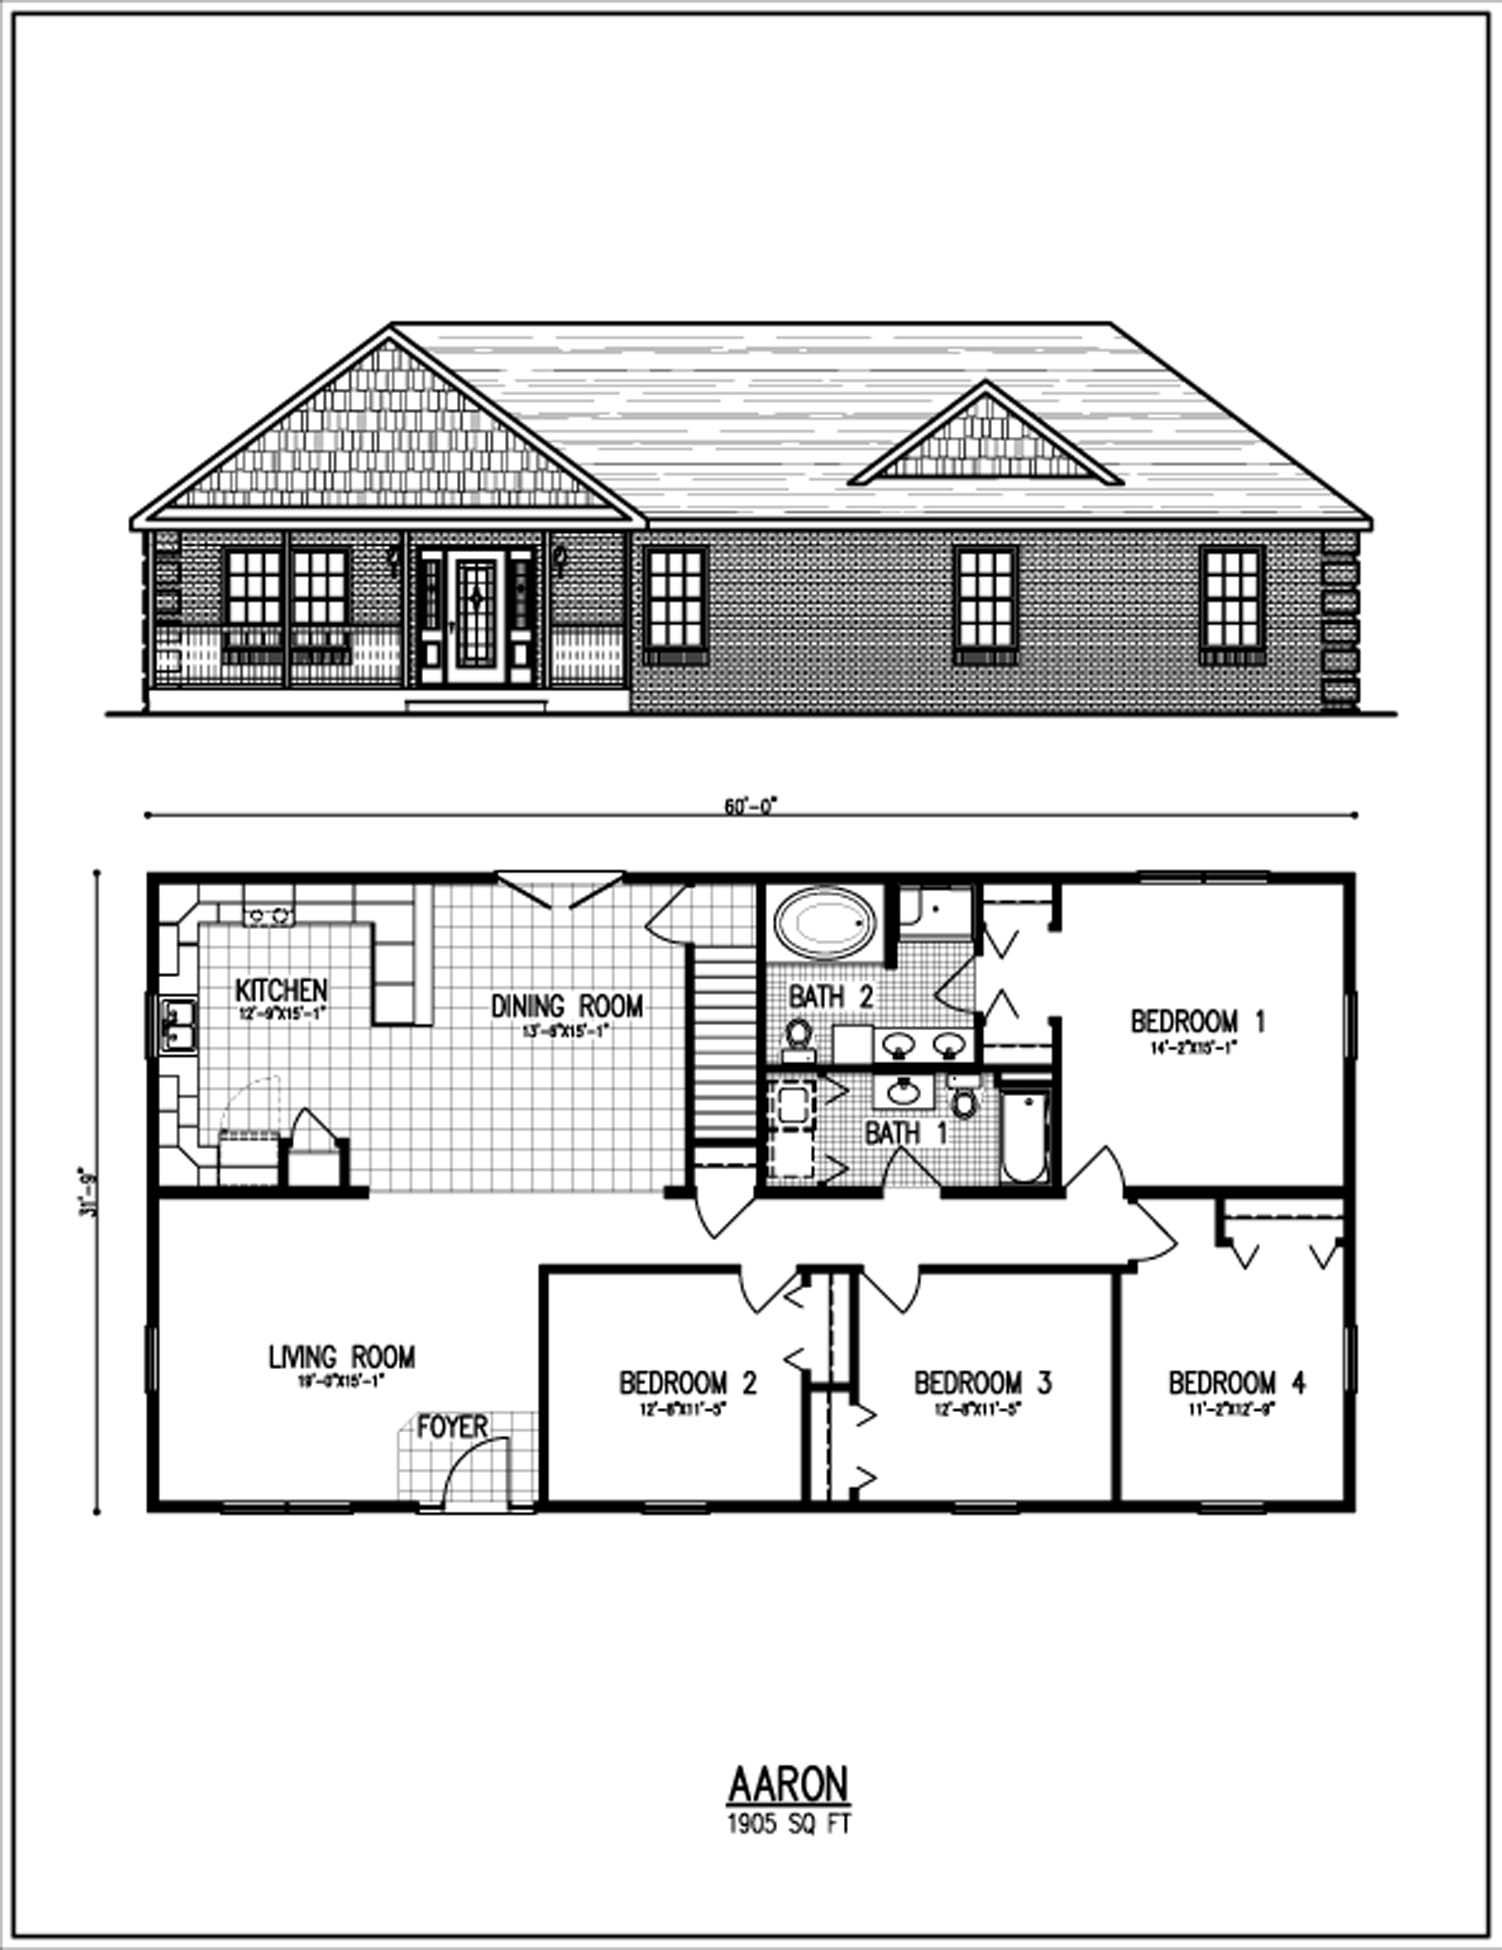 All american homes floorplan center staffordcape for American house designs and floor plans